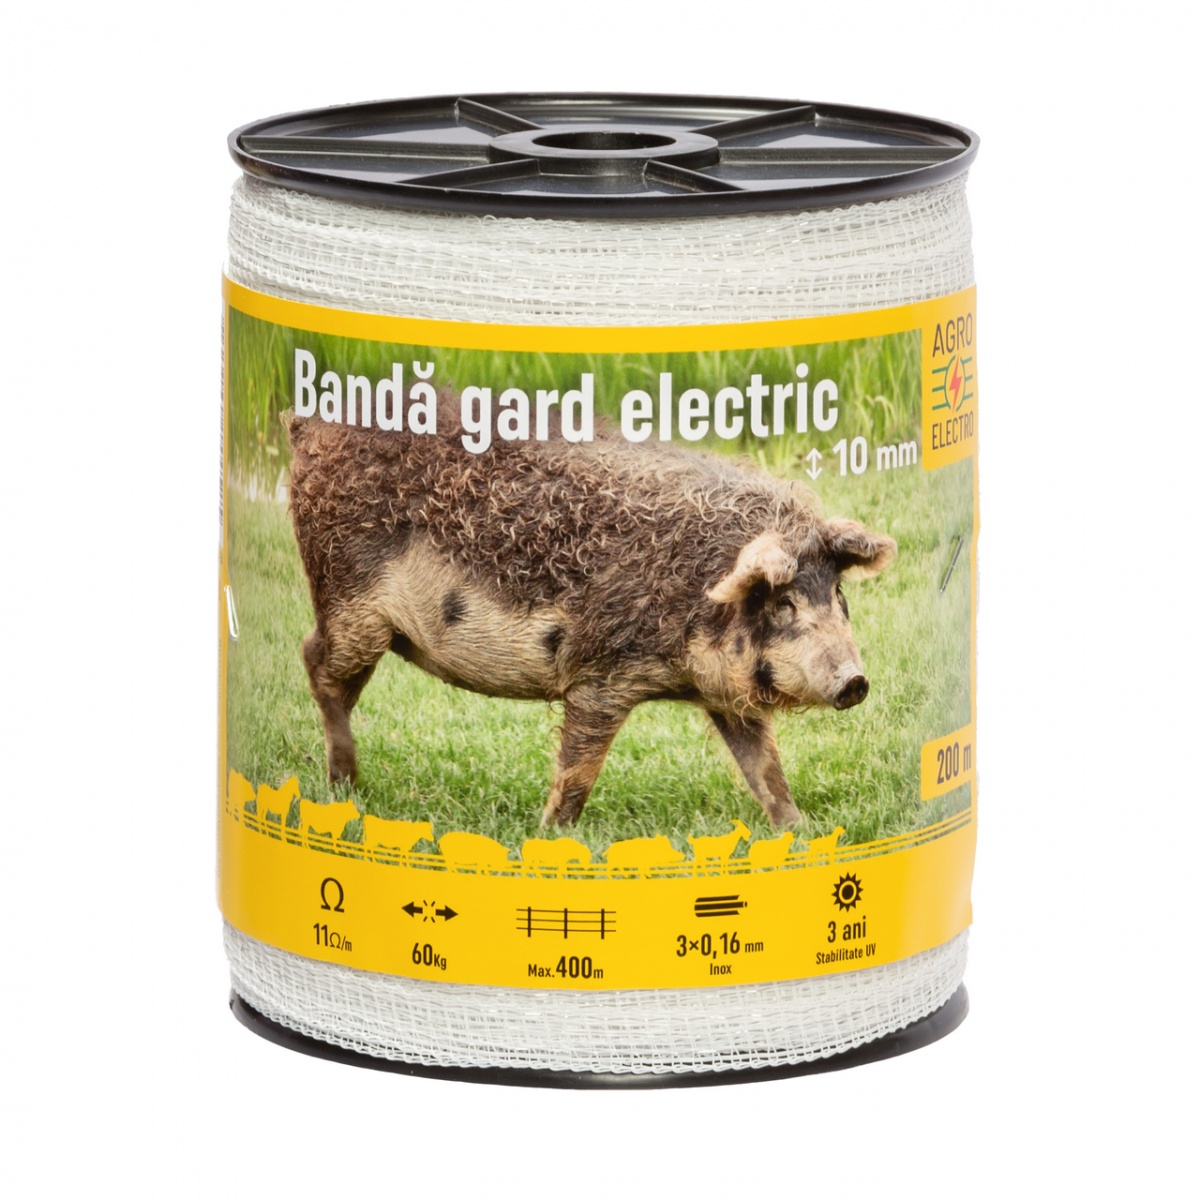 Bandă gard electric - 10 mm - 200 m - 60 kg - 11 Ω/m